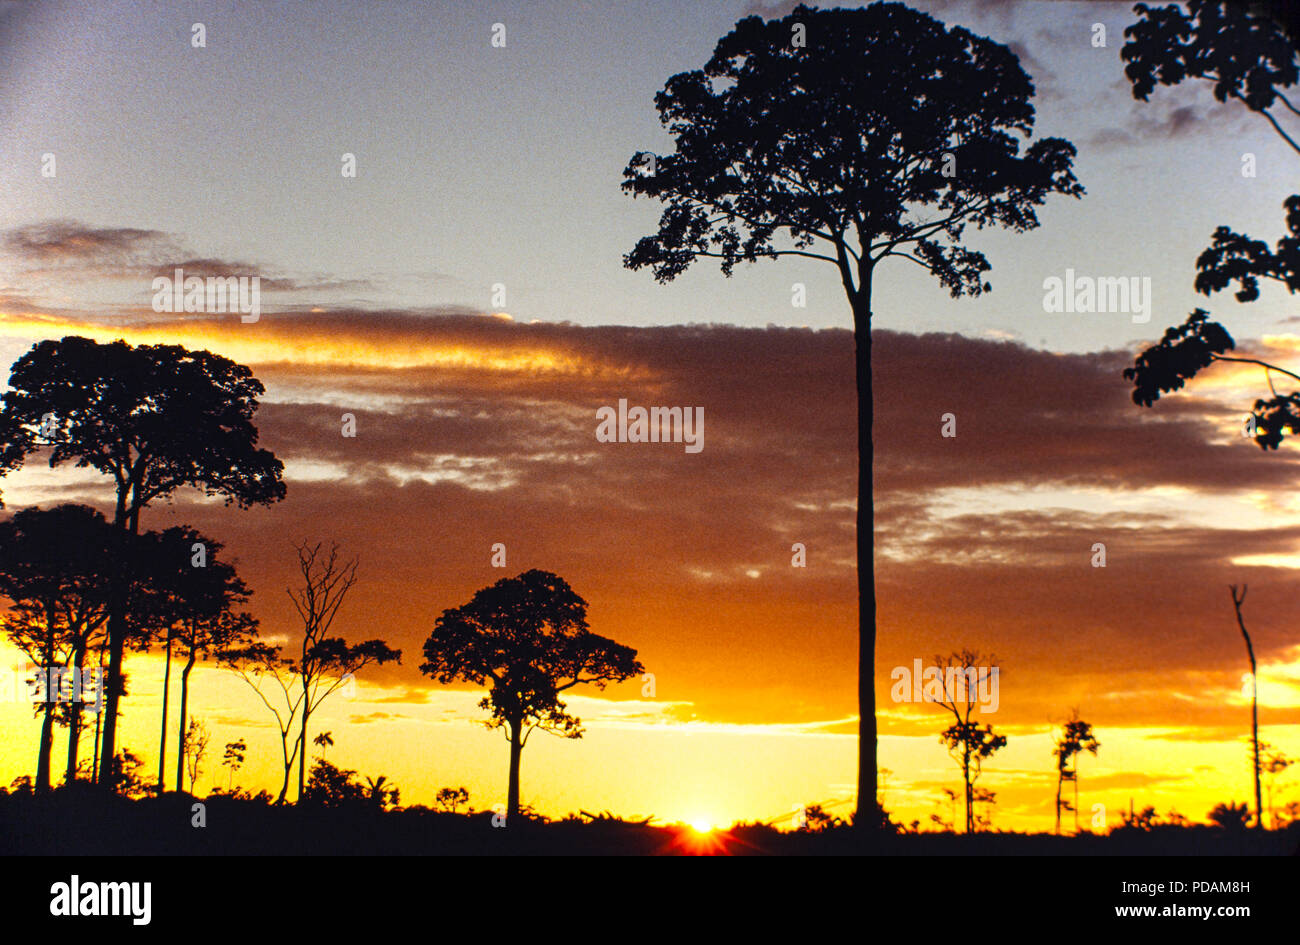 Isolated Brazil nut tree sentenced to death after Amazon rainforest clearance, near Rio Branco city, Acre State, Brazil - Amazon deforestation - Stock Image